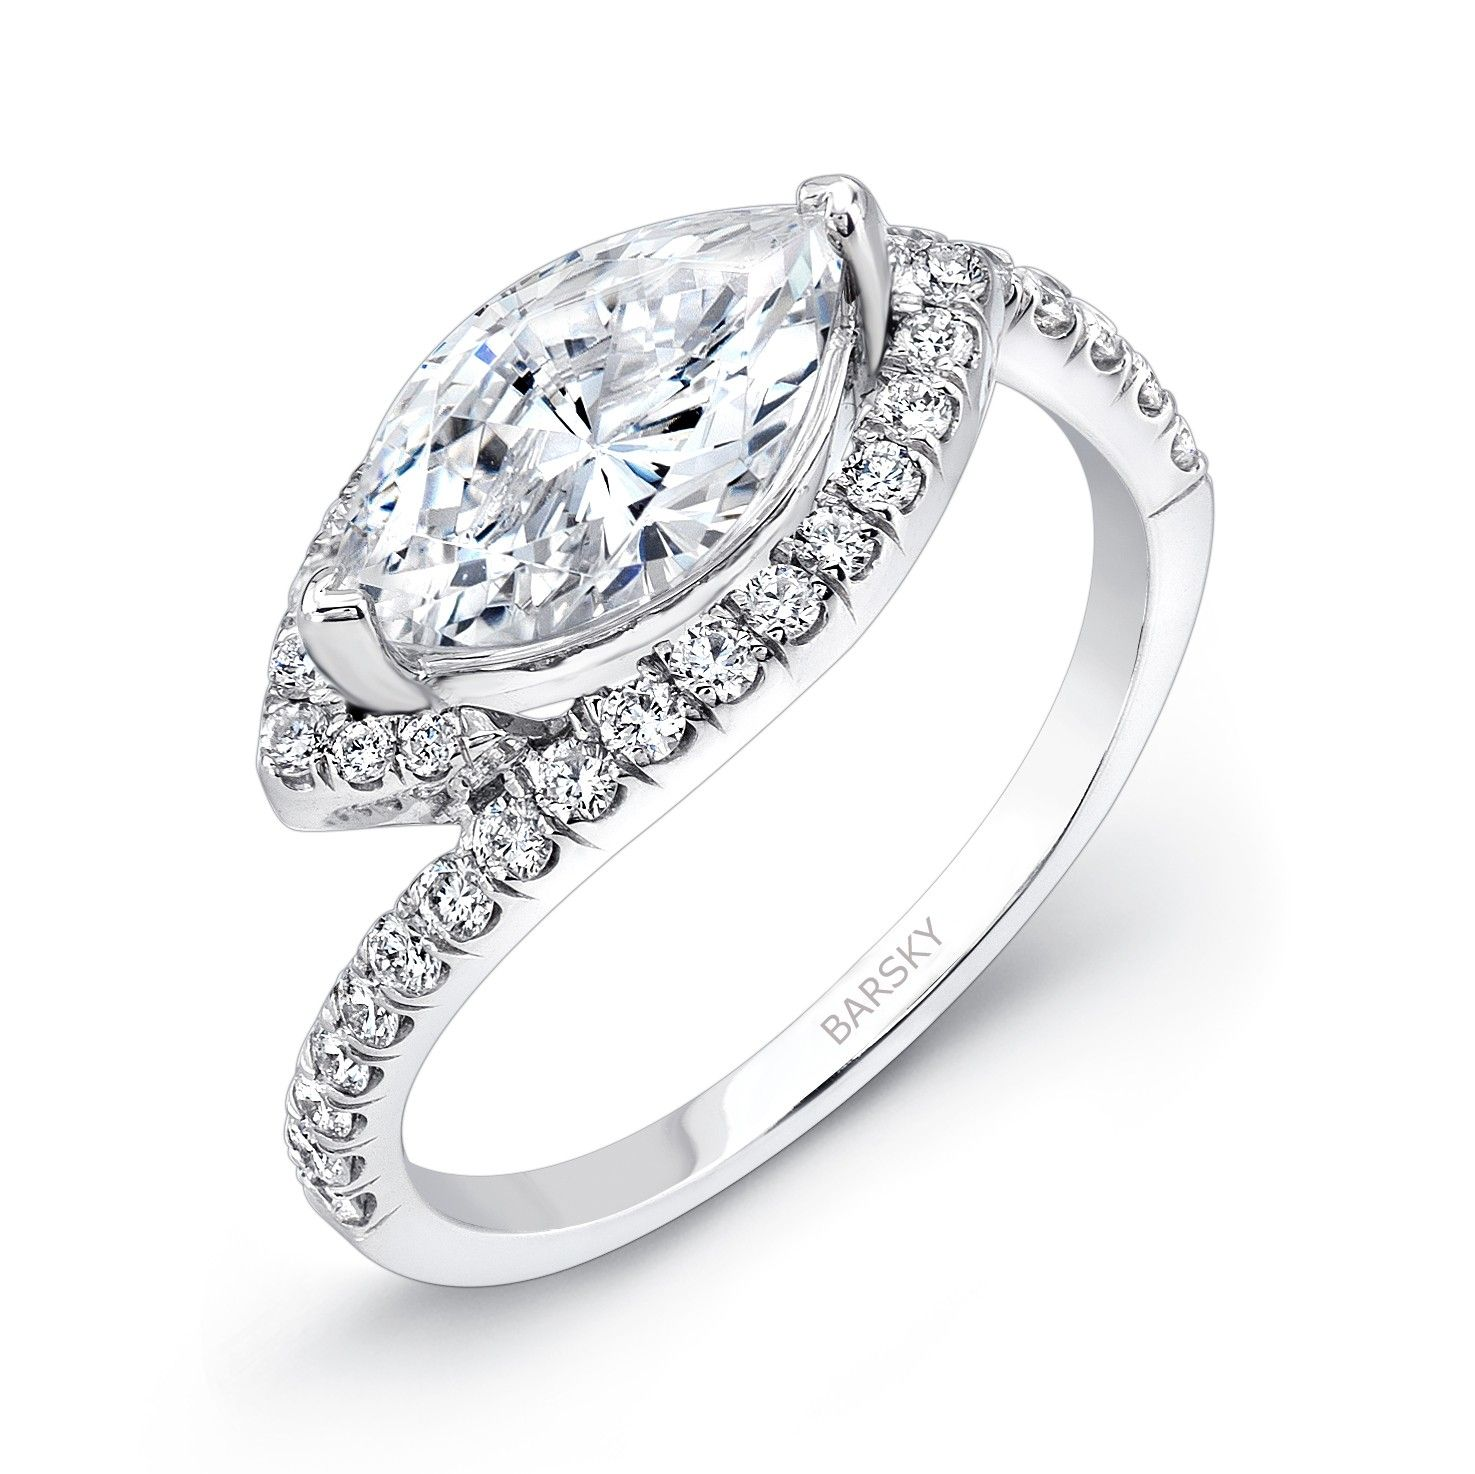 settings our engagement aa tears this blog of jewellery designs wedding are venus newly ring sg bands added some latest rings bc